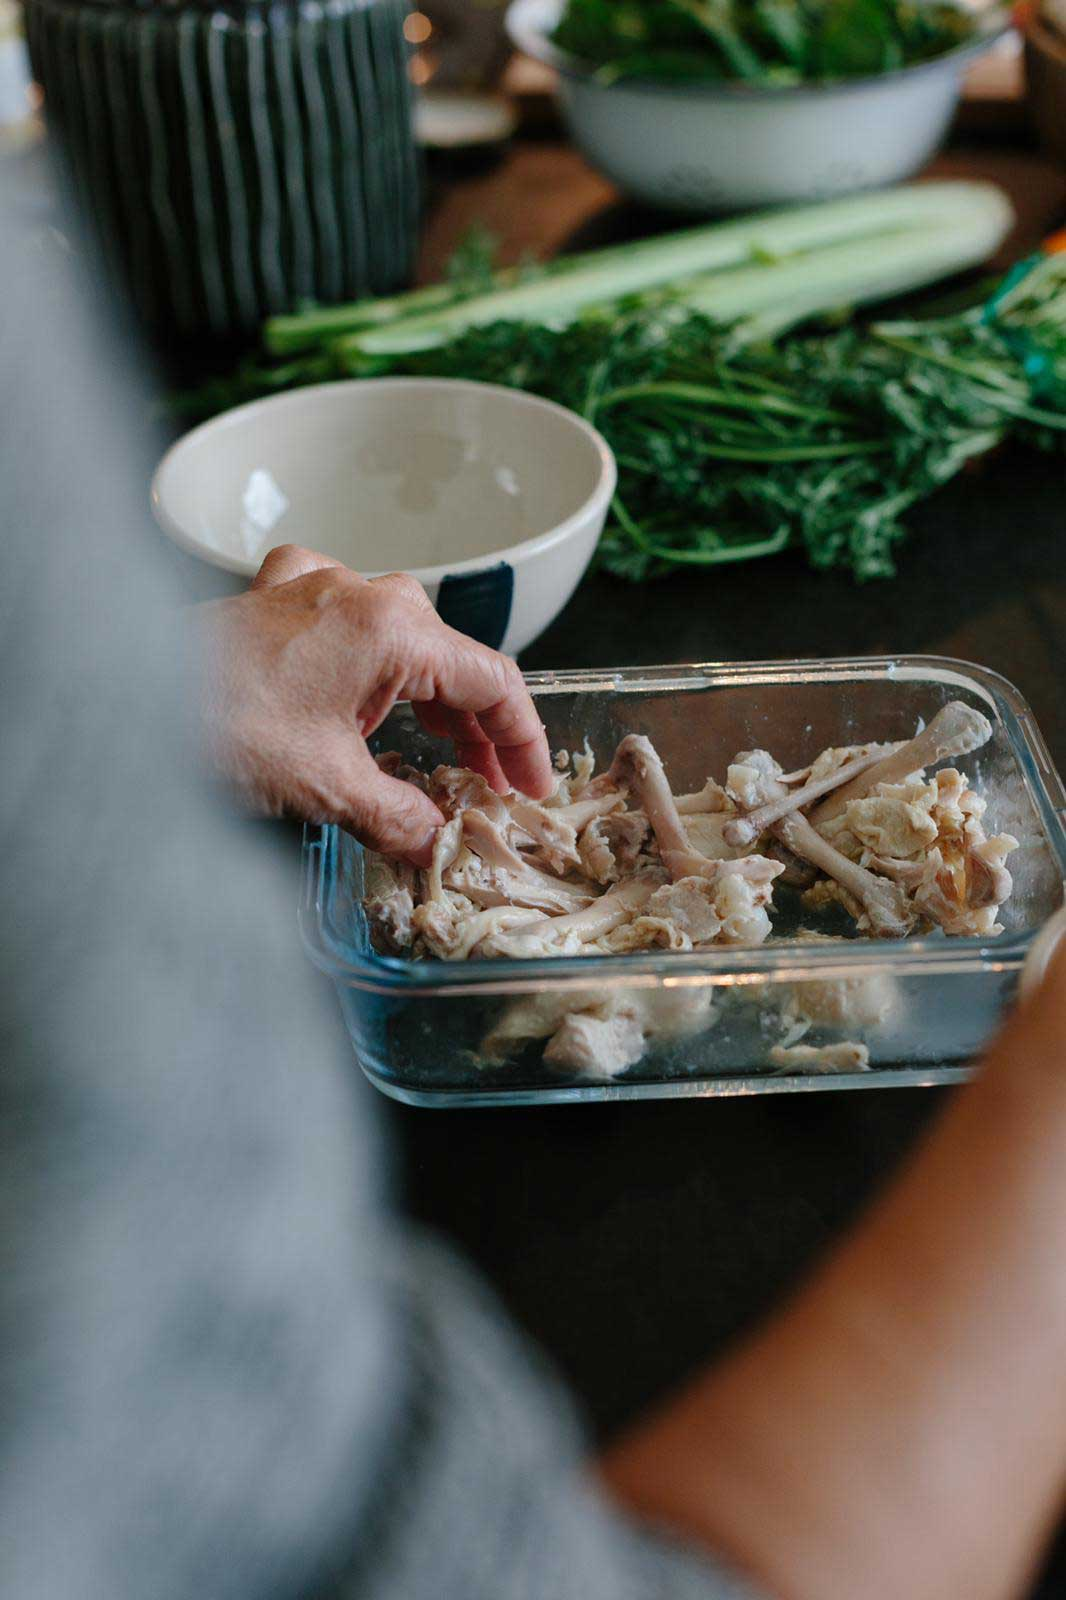 chicken bones chicken wings stock recipe waste free recipes zero waste